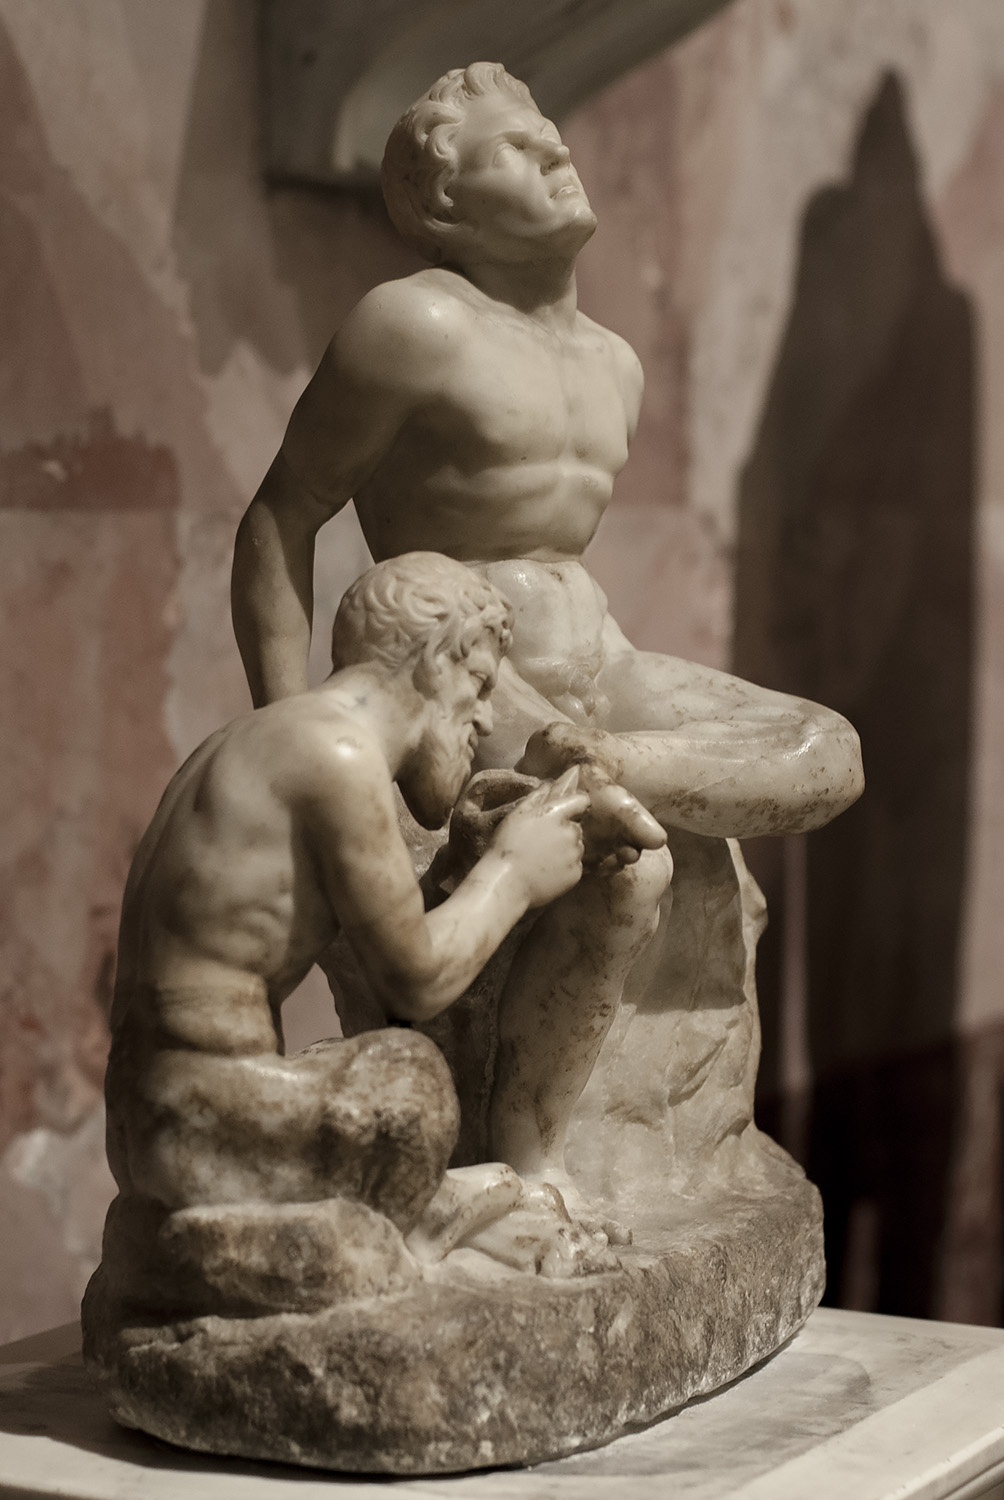 Pan removing a splinter from a satyr's foot. Marble. Roman work after a Greek statuary group of the 3rd cent. BCE. Inv. No. ГР. 4181 (А. 388). Saint Petersburg, The State Hermitage Museum